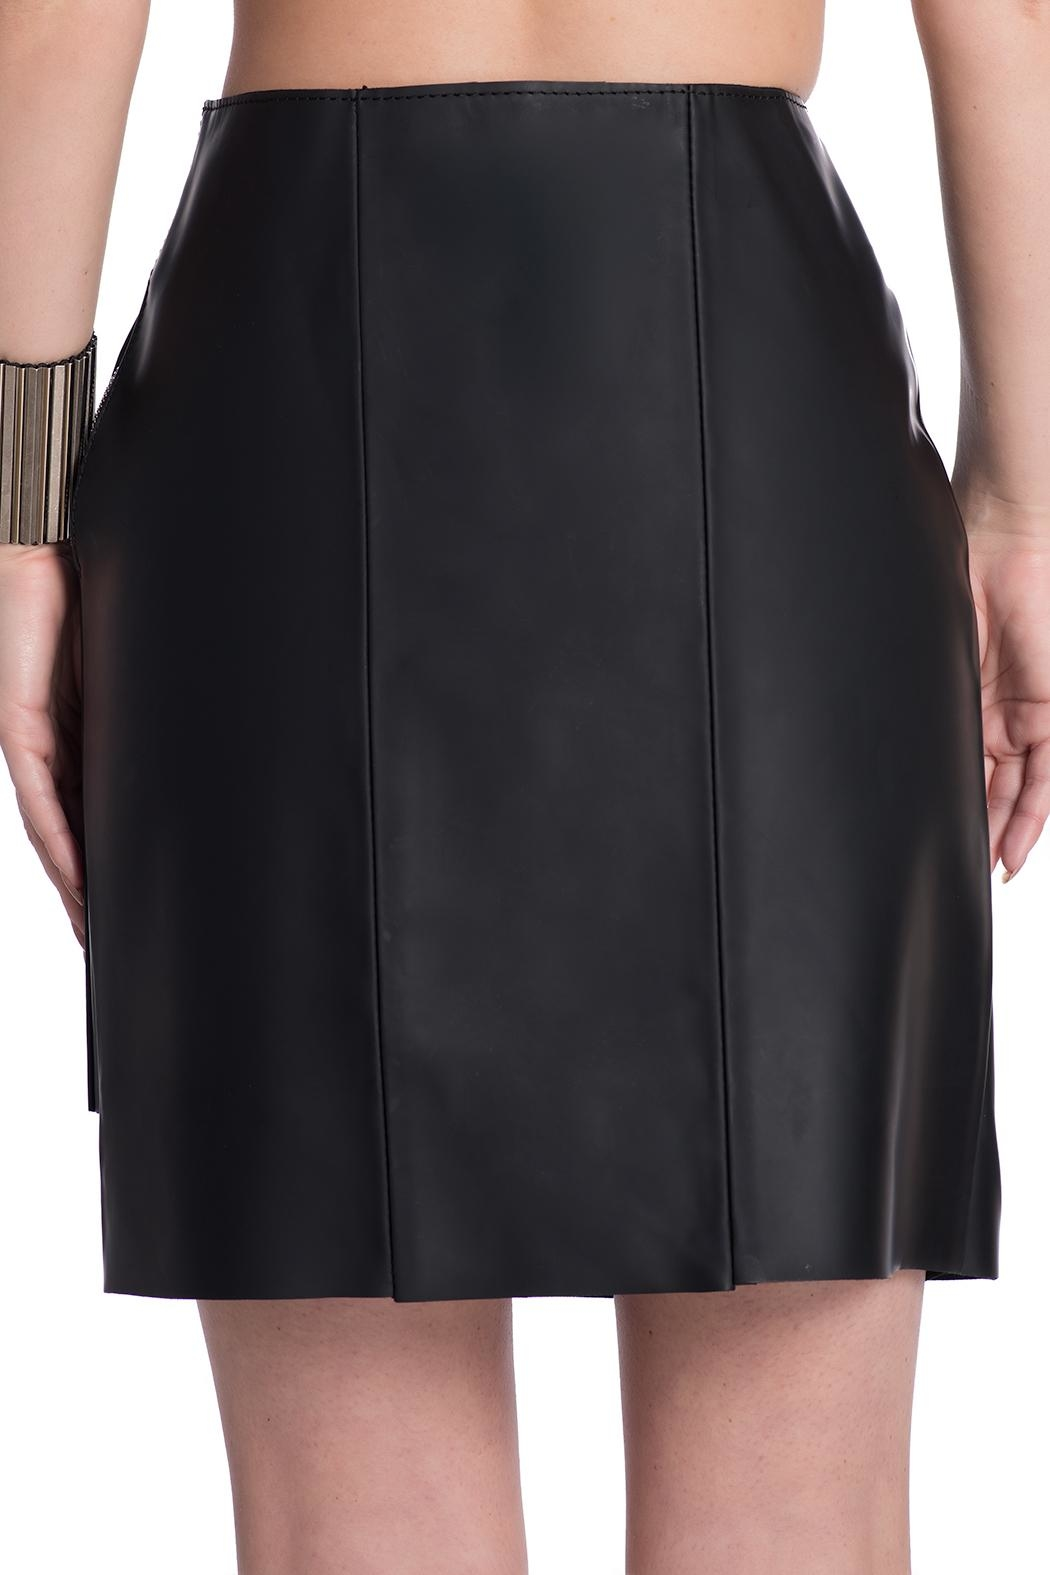 Charlie May Rubberized Leather Skirt - Side Cropped Image